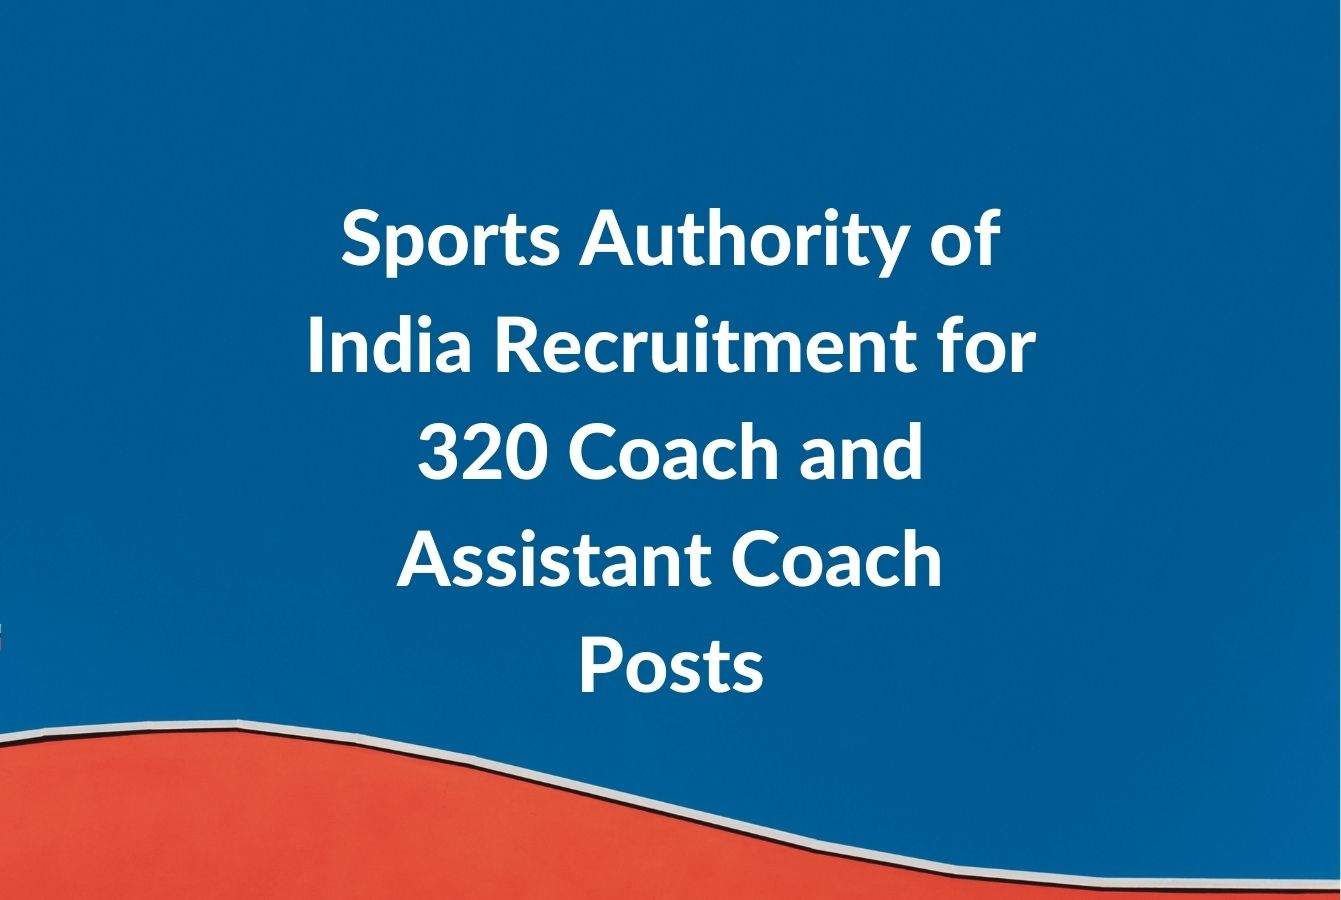 Sports Authority of India (SAI) Recruitment 2021 for 320 Coach and Assistant Coach Posts